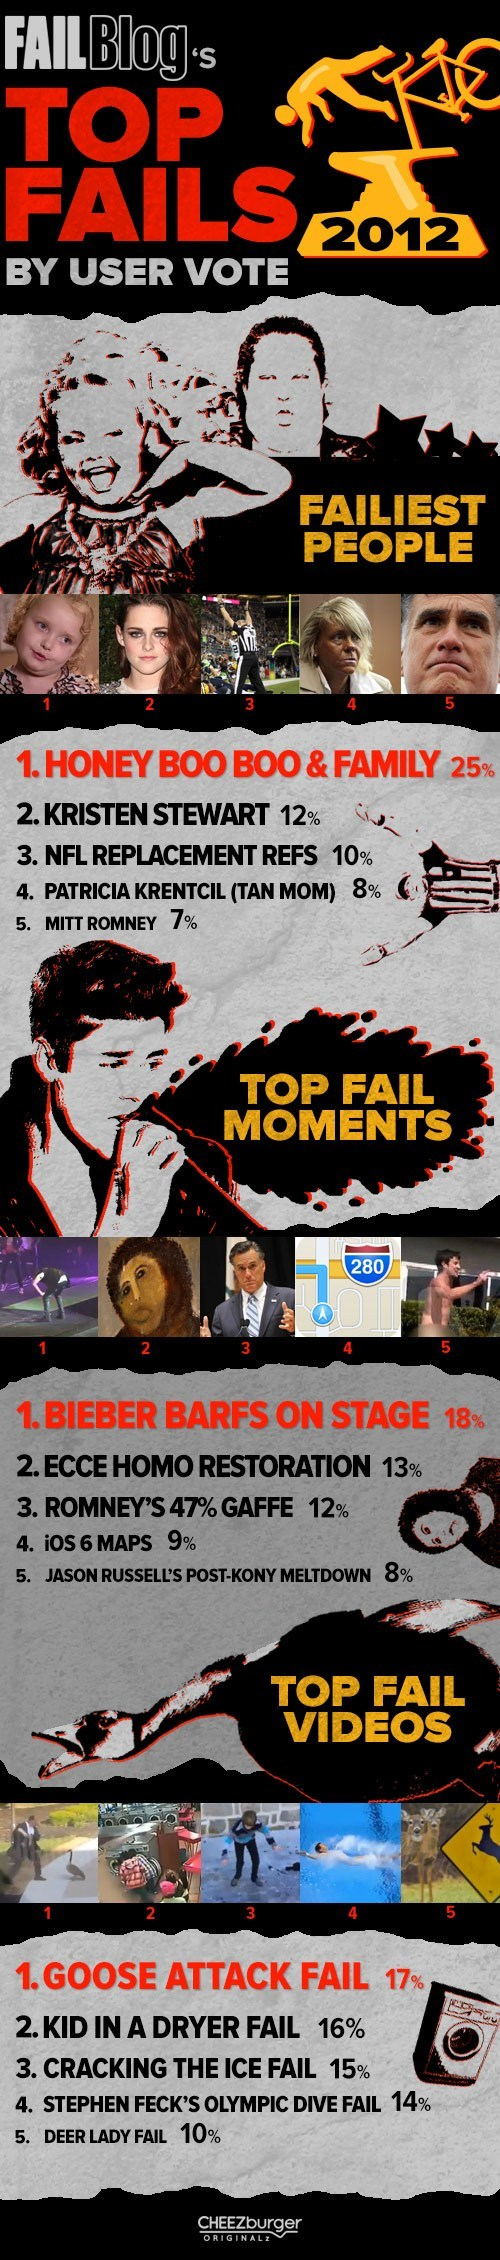 Top FAILs of 2012